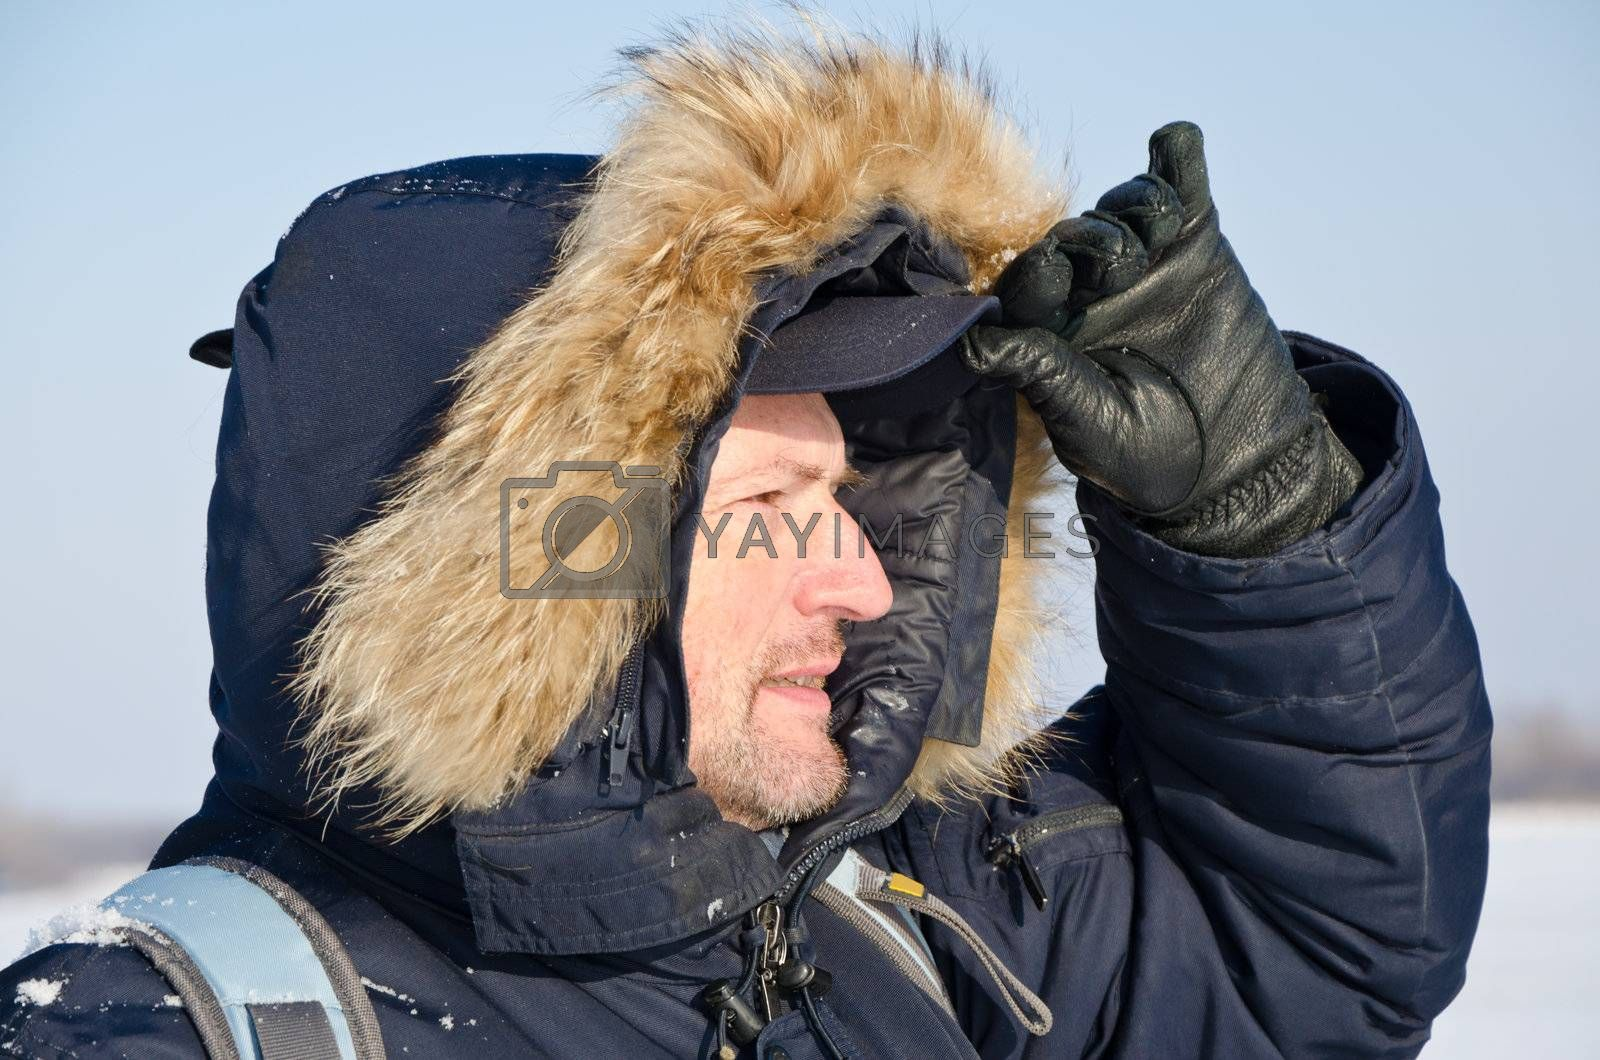 Portrait of a traveler in winter clothes in an outdoor